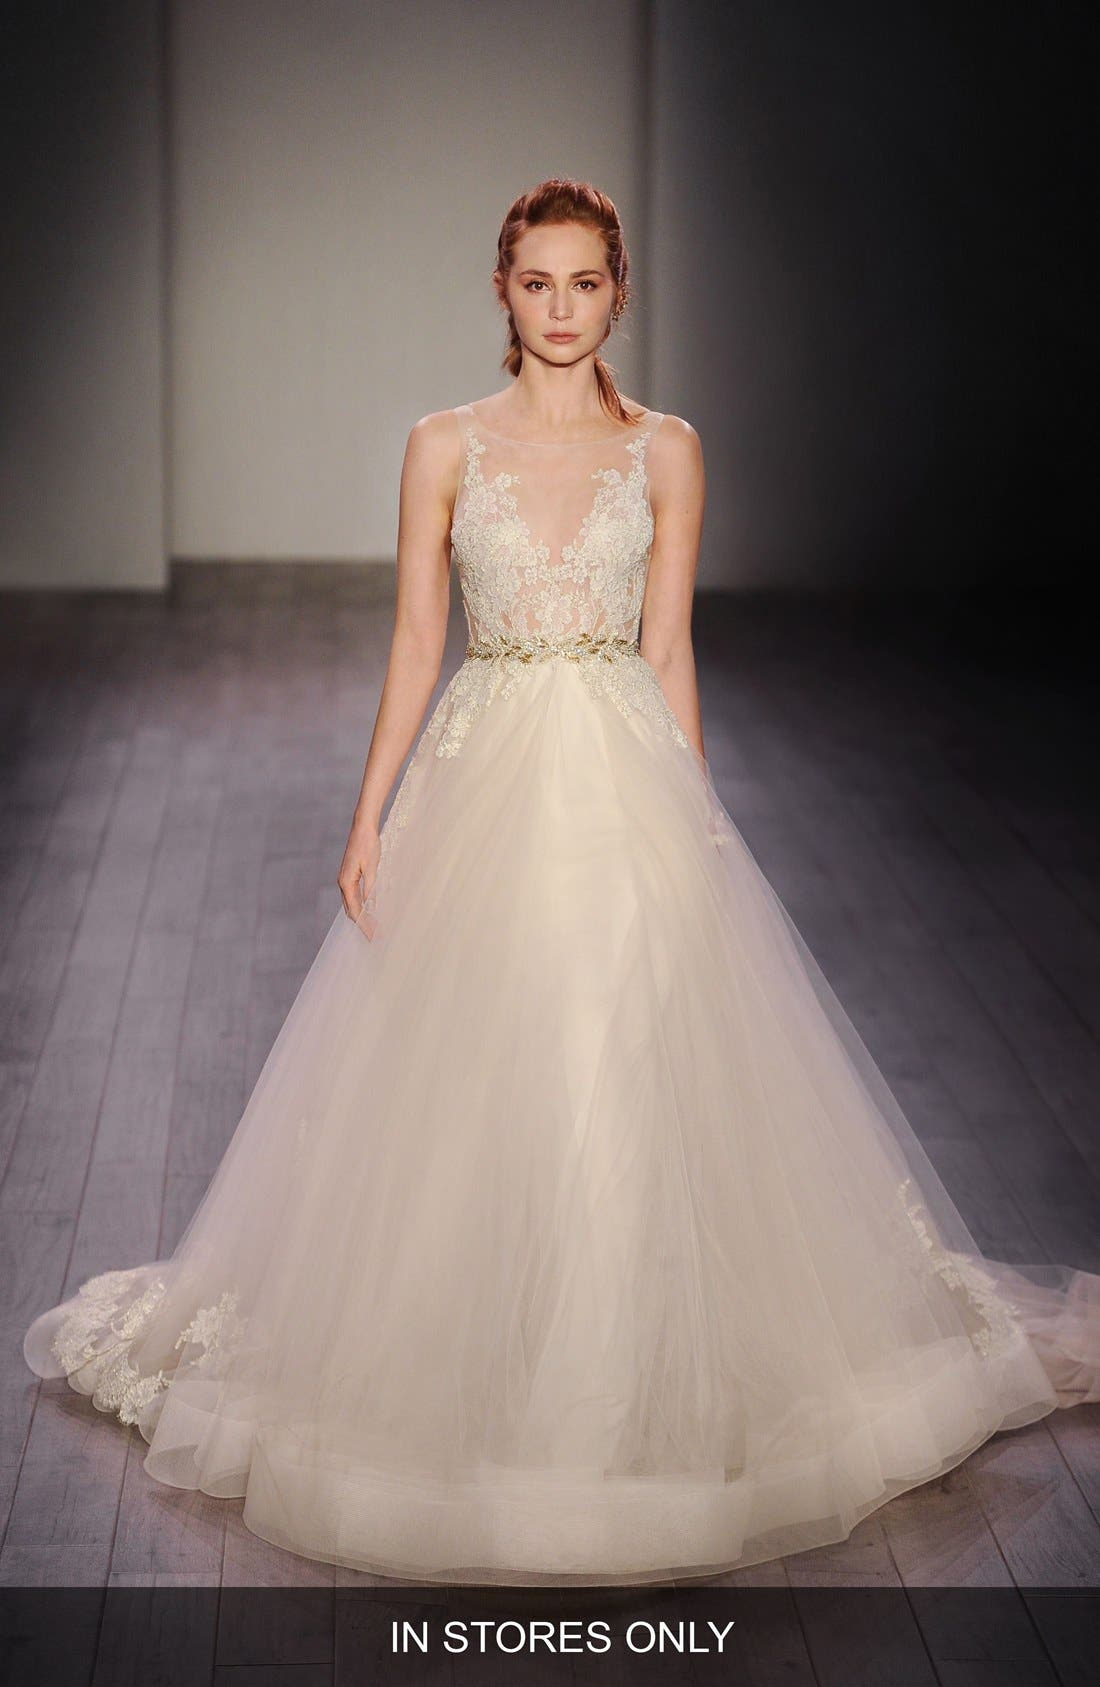 Lazaro Lace Appliqué Tulle Ballgown Dress (In Stores Only)